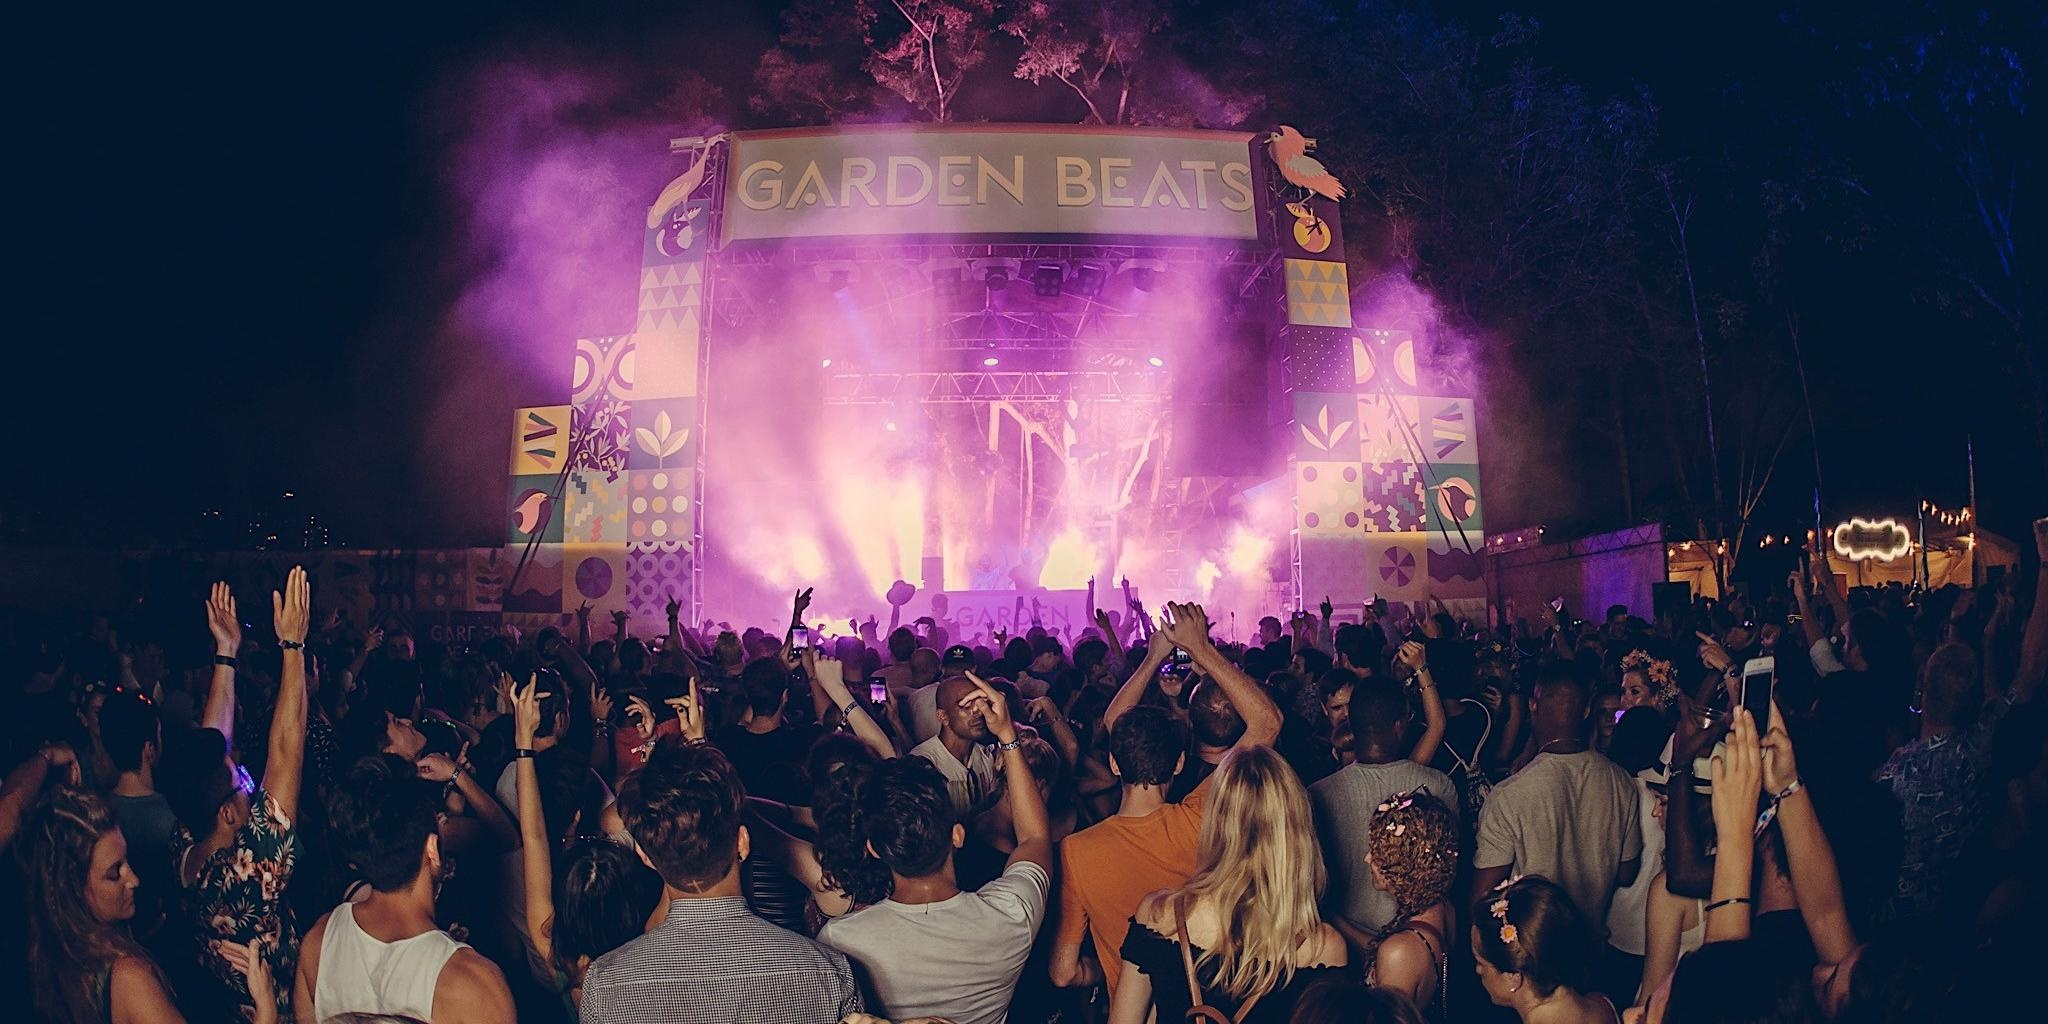 Garden Beats announces 2019 return, festival date and more